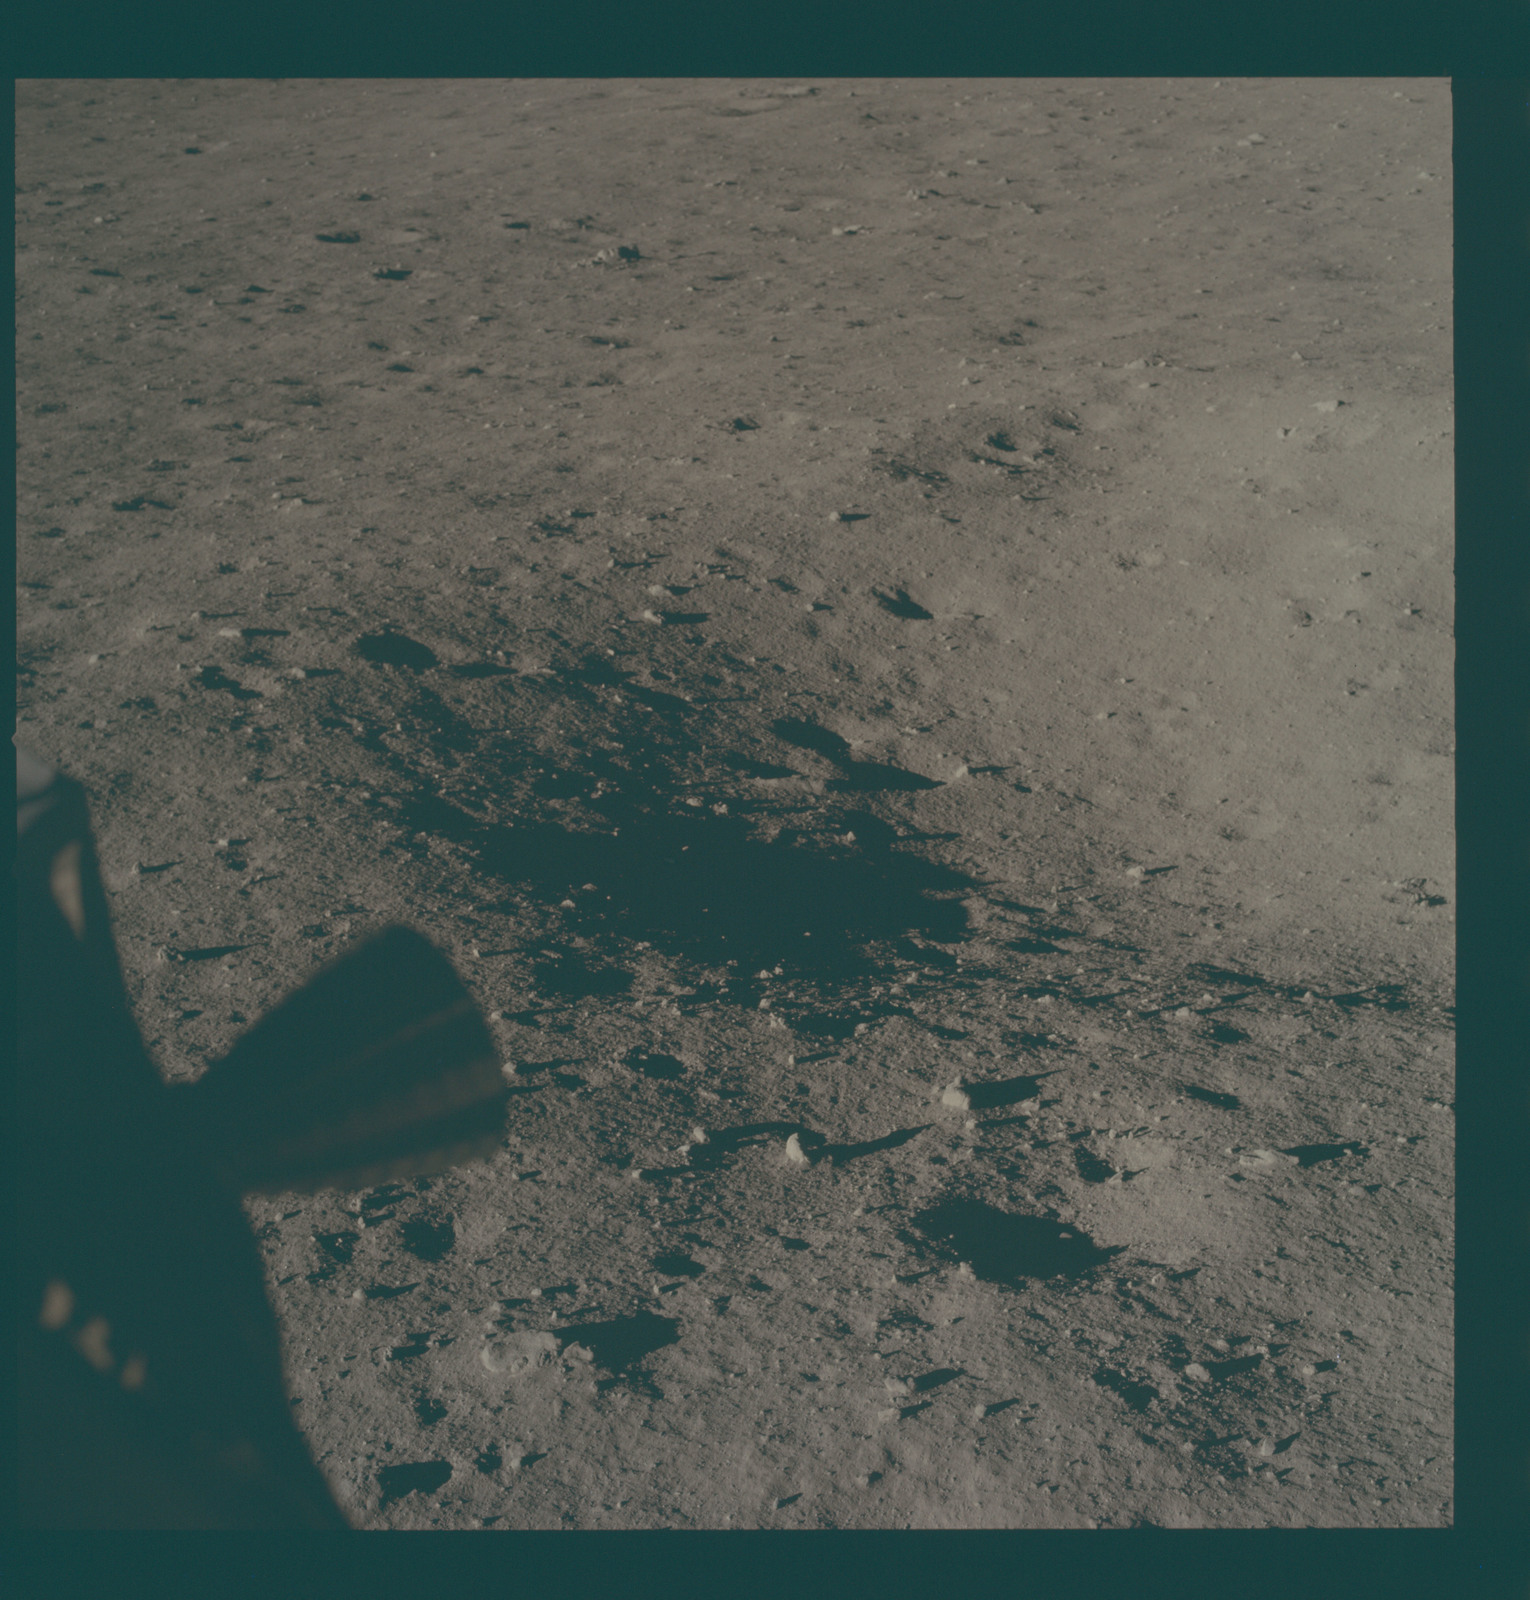 AS11-37-5452 - Apollo 11 - Apollo 11 Mission image - Lunar surface at Tranquility Base